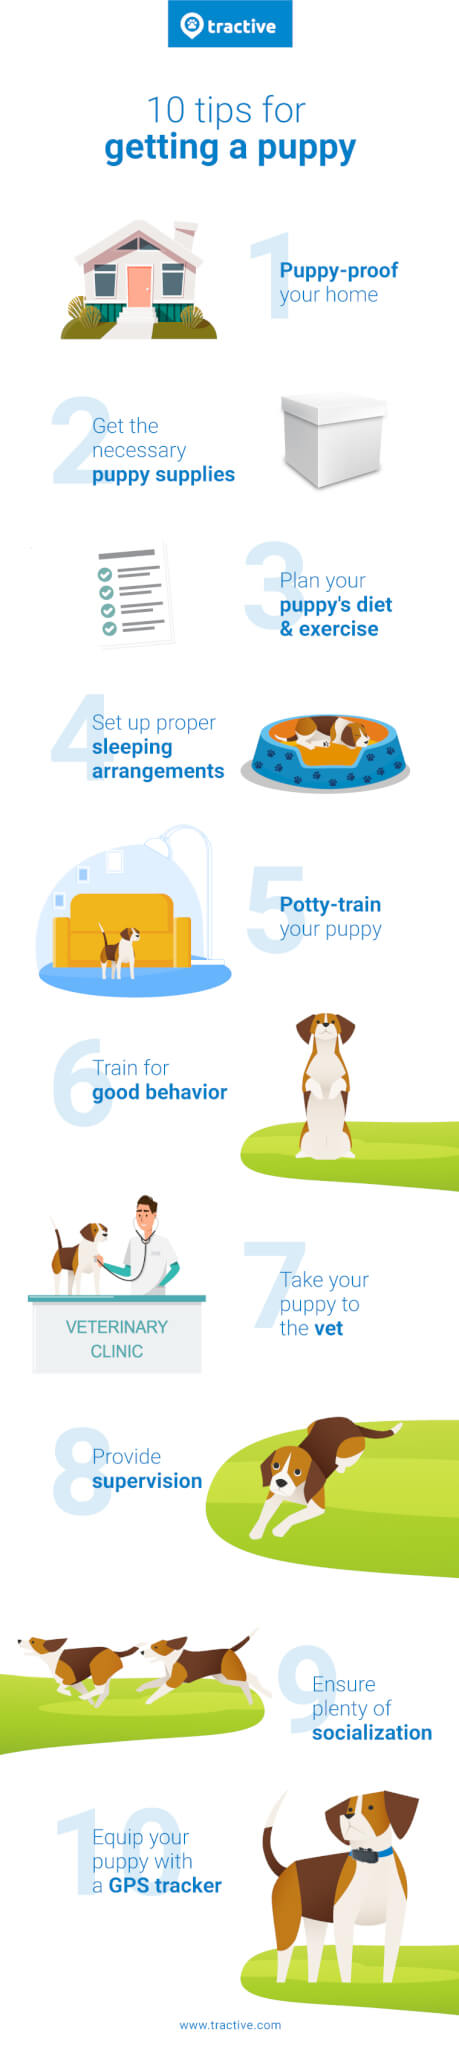 Bringing Home A New Puppy,Tips for New Puppy Owners